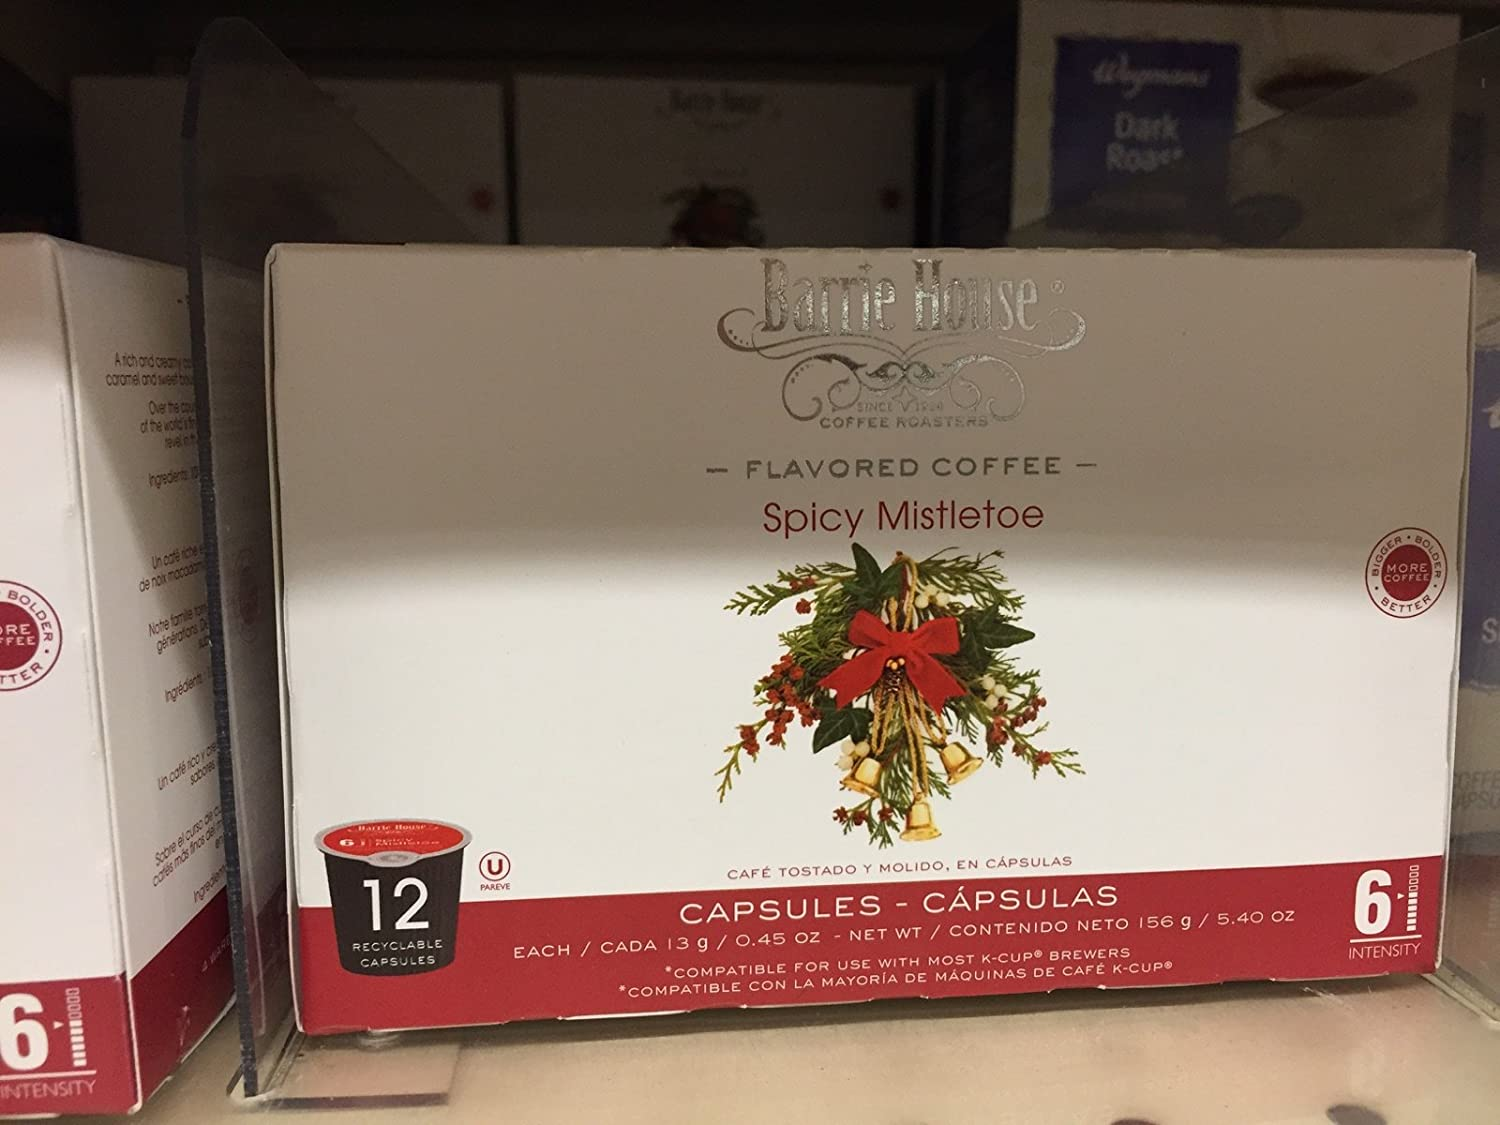 Barrie House, Spicy Mistletoe, Single Cup Capsule (12 Capsules): Amazon.com: Grocery & Gourmet Food